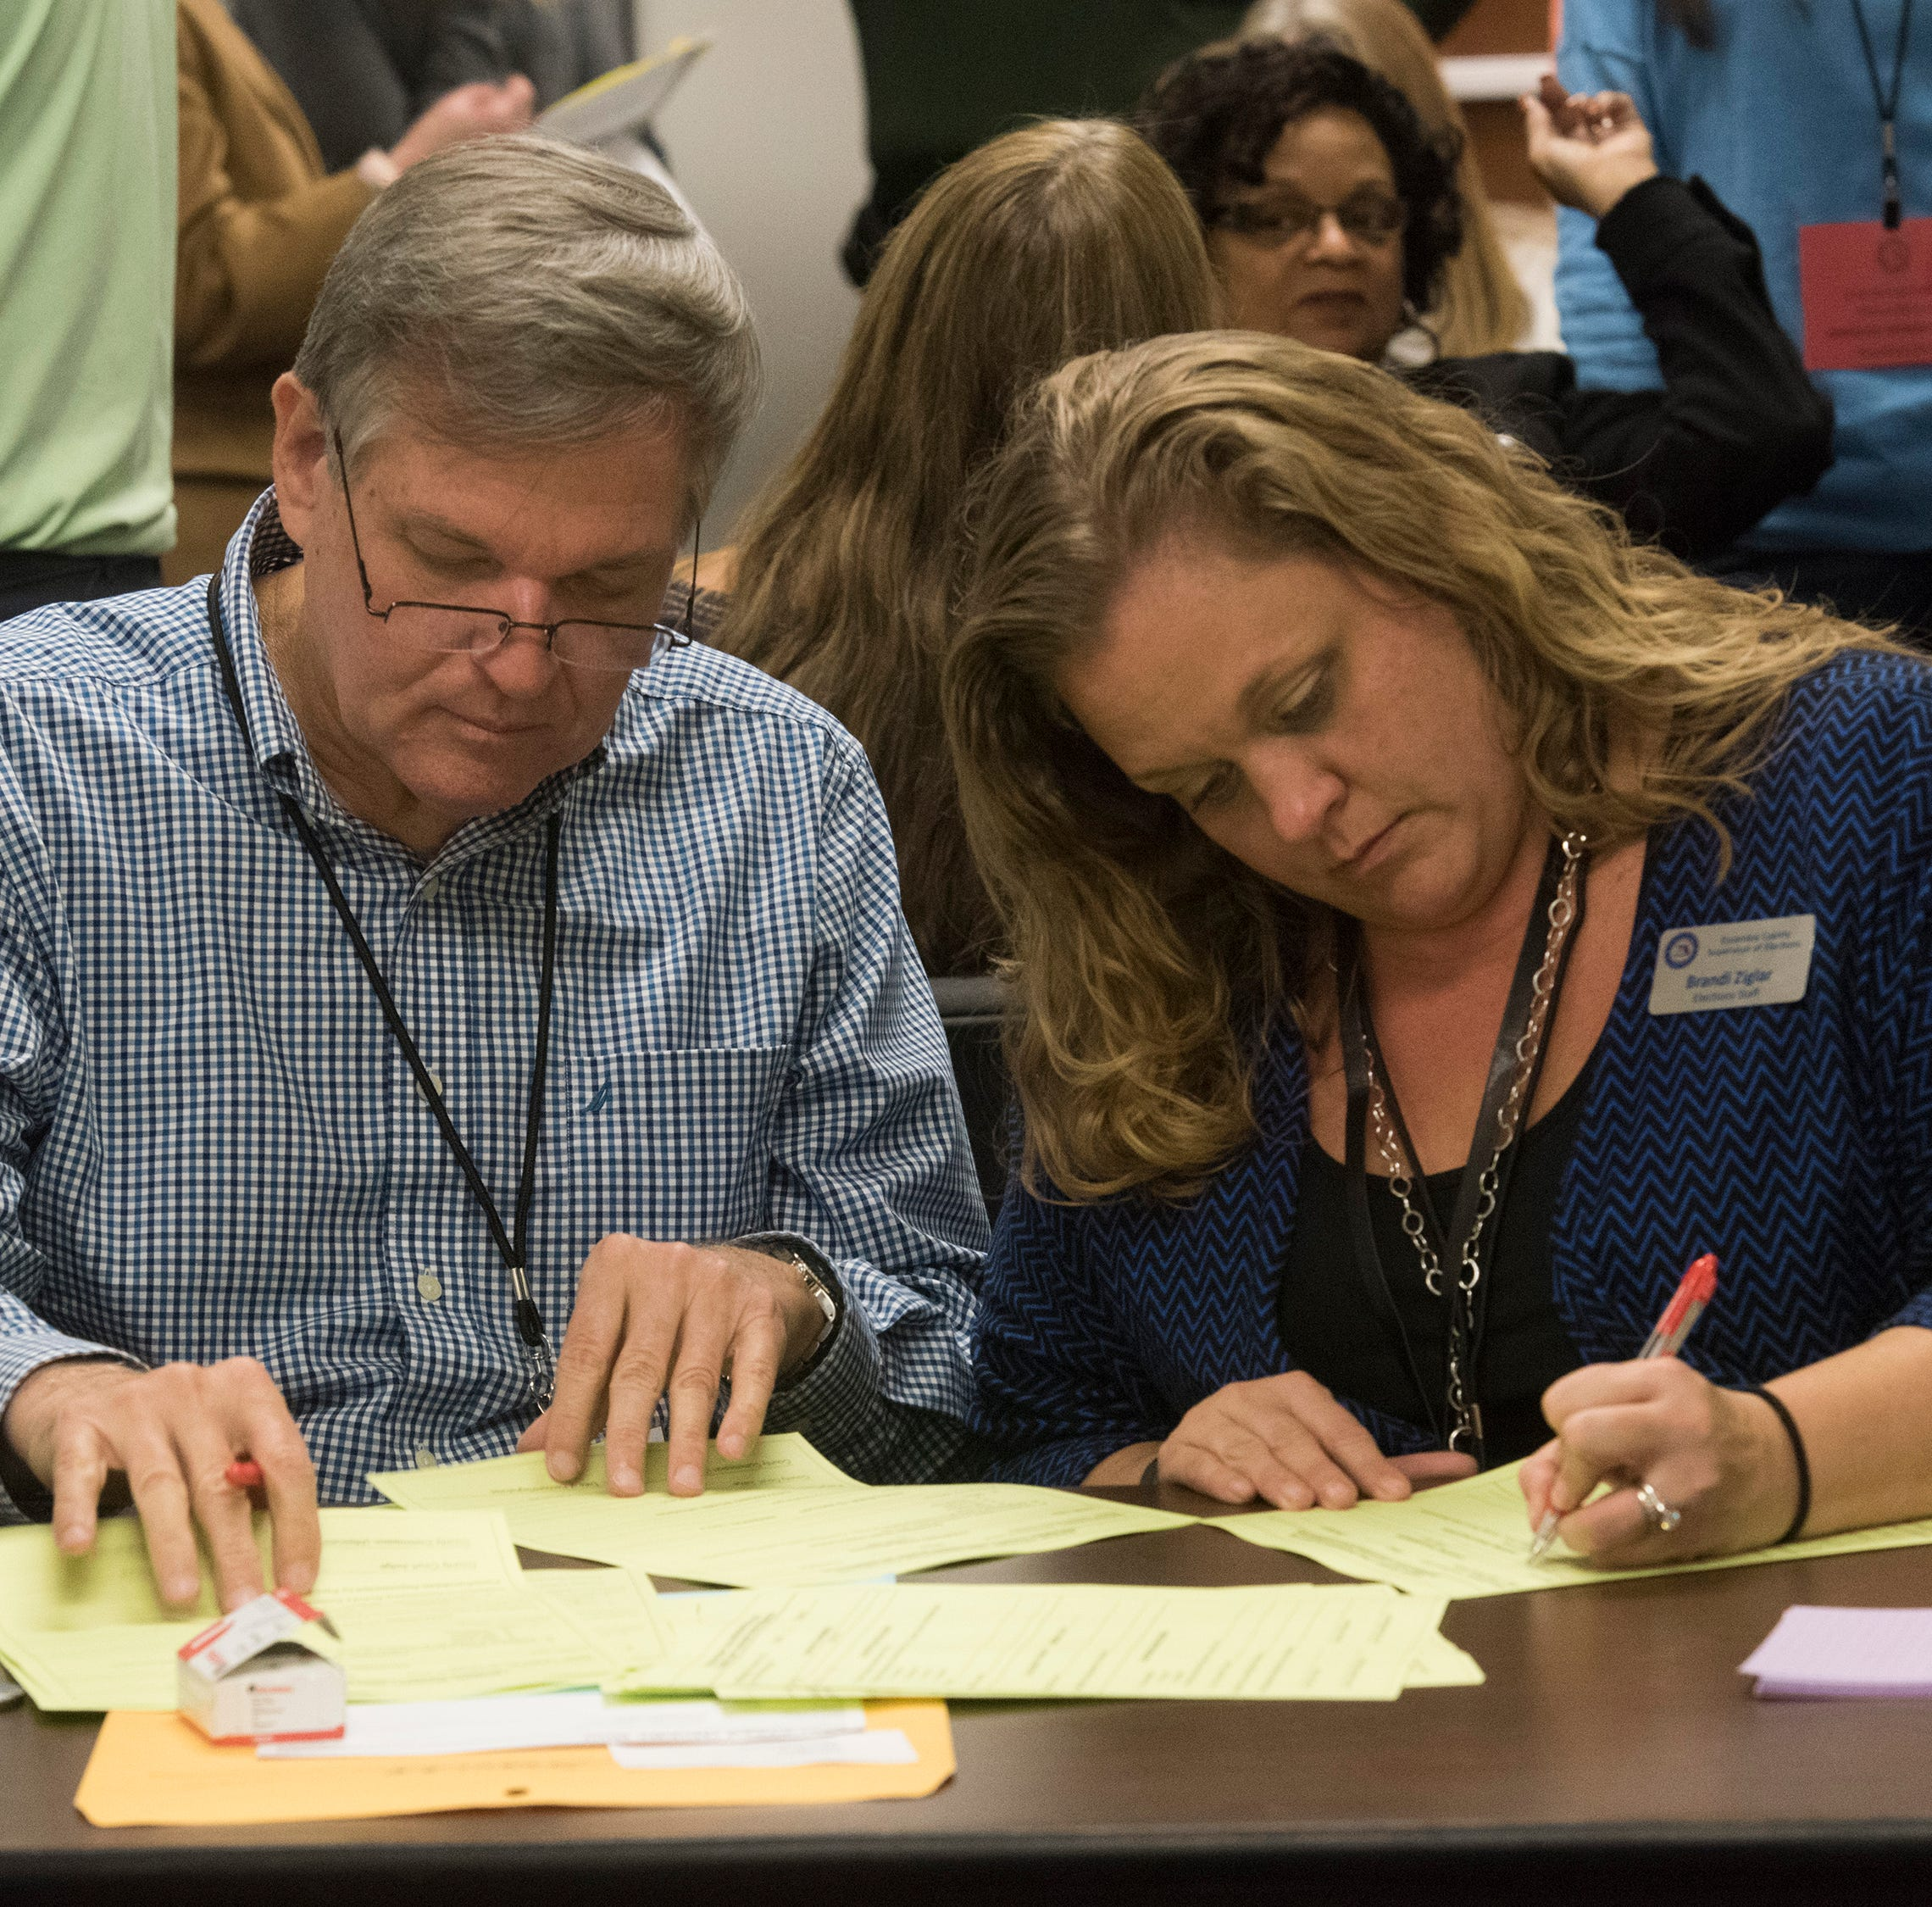 Manual recount complete in Santa Rosa County, will continue in Escambia County